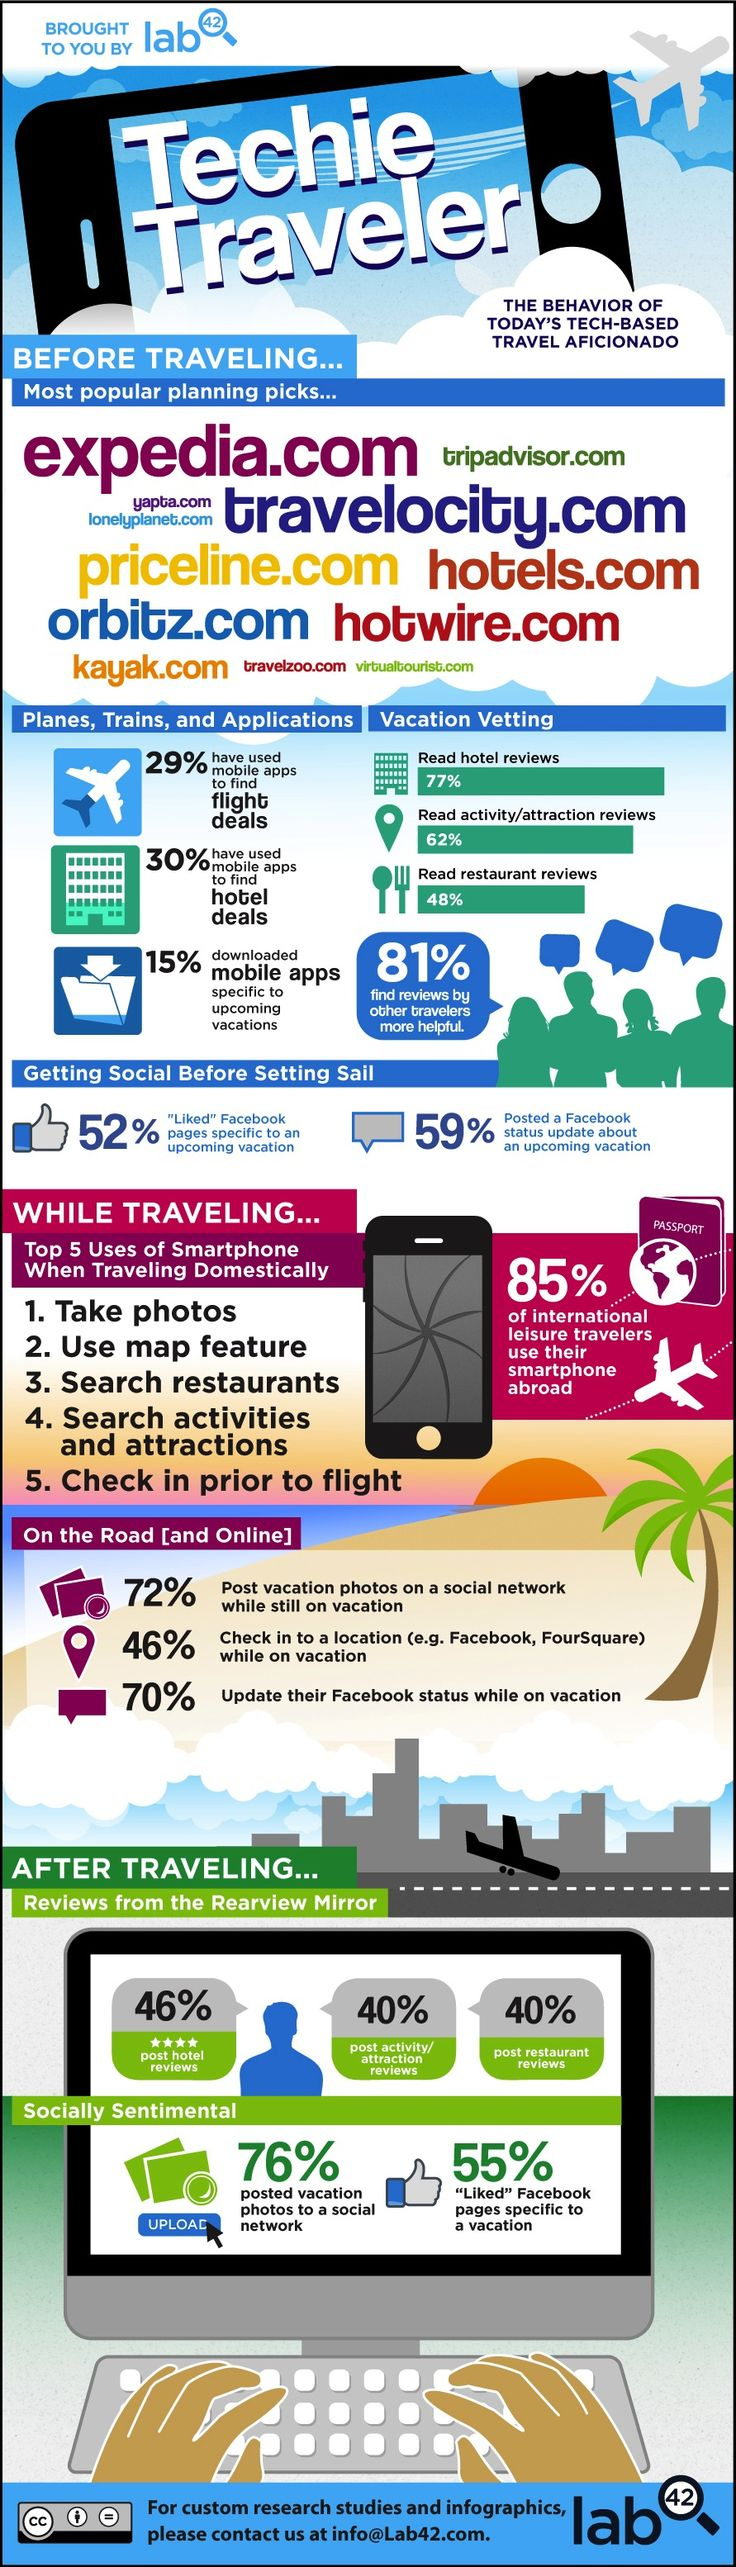 [how tech is changing travel]Techie Travel, Website, Web Site, Travel Infographic, Social Media, Socialmedia, Mobiles Marketing, Travel Gadgets, Change Travel